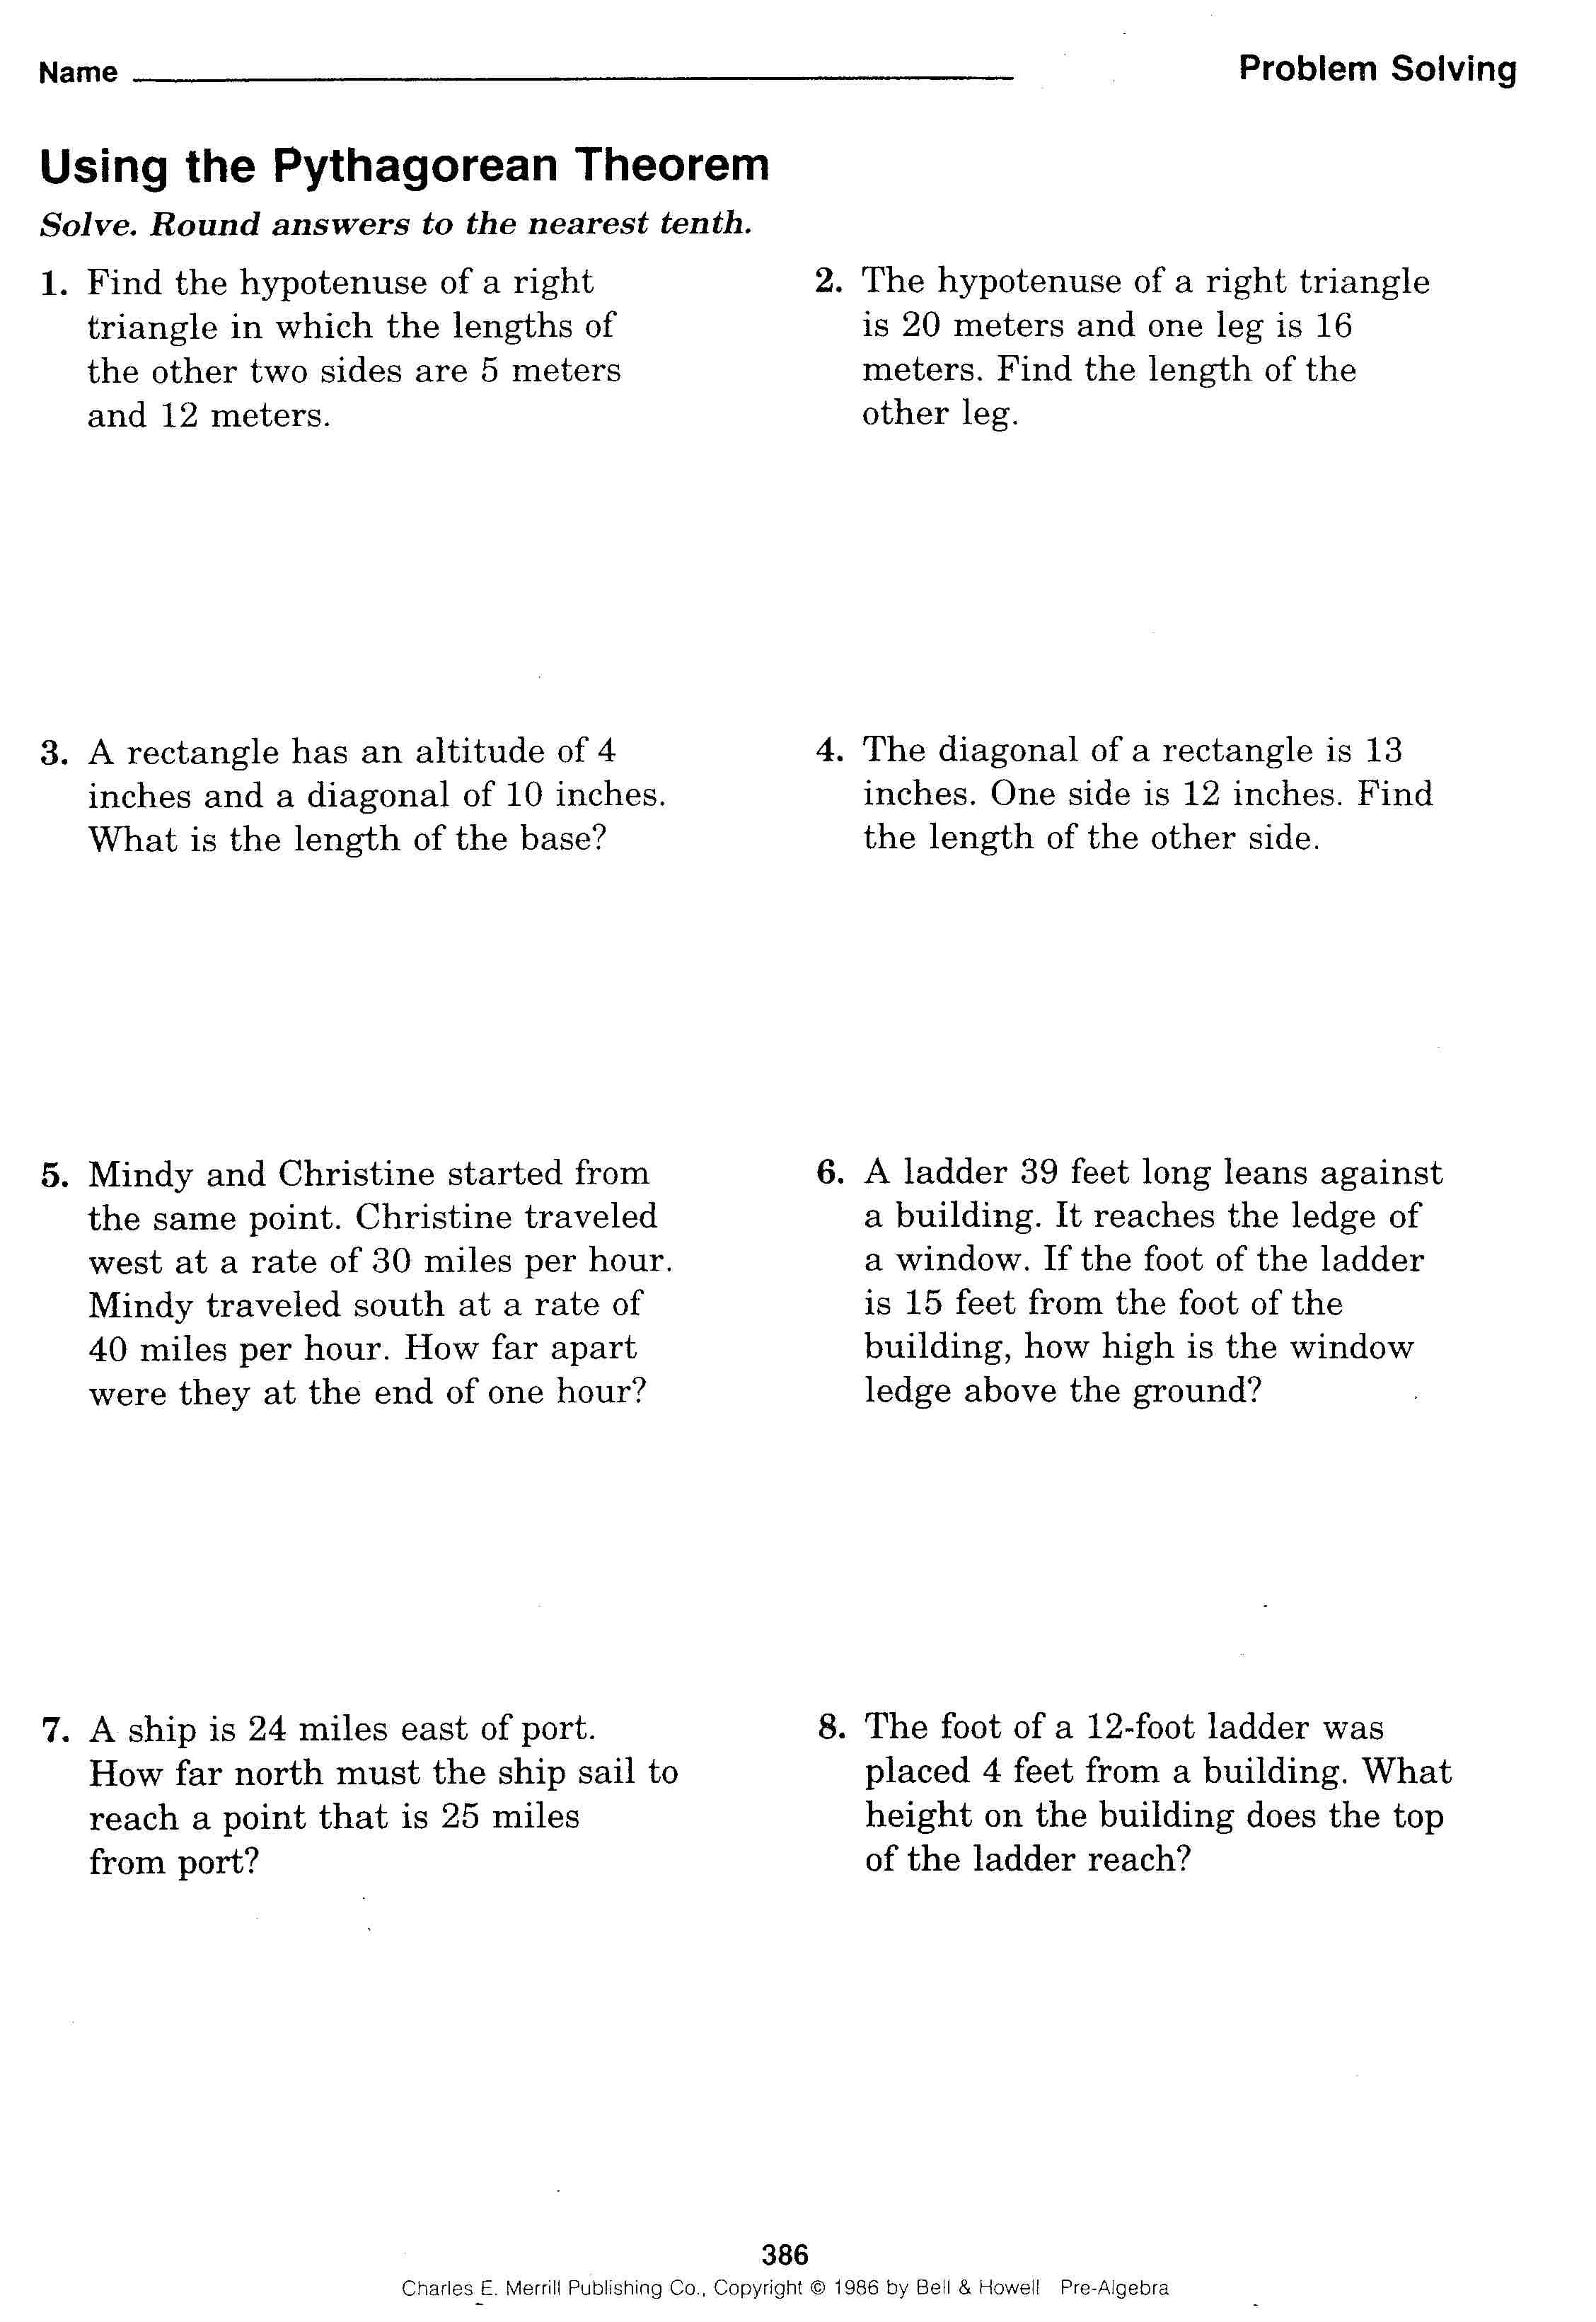 Grade 8 Pythagorean Theorem Word Problems Worksheet